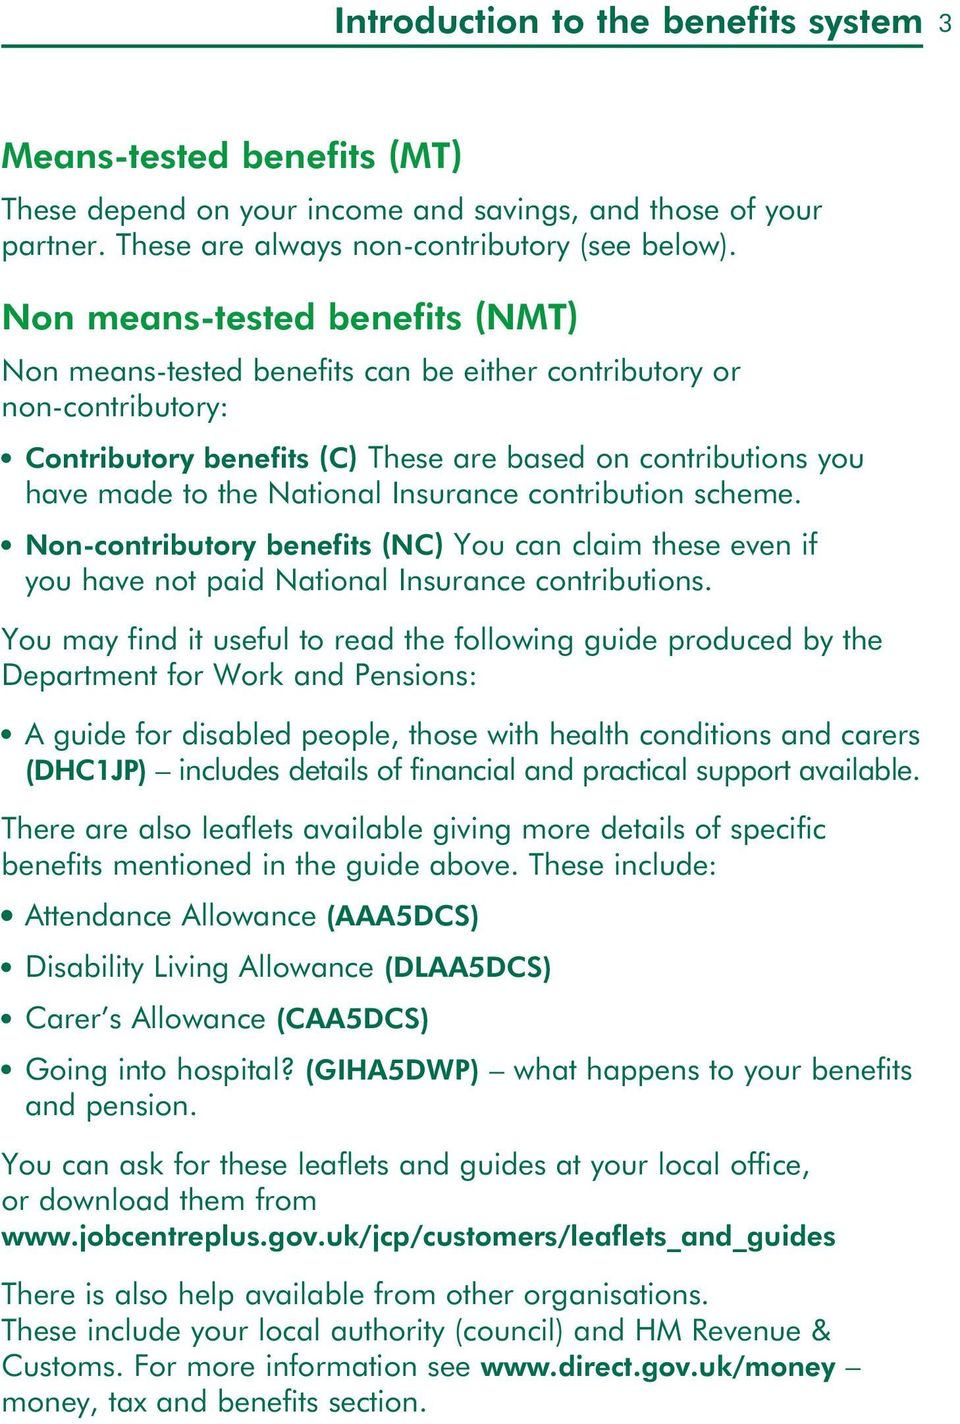 scheme. No-cotributory beefits (NC) You ca claim these eve if you have ot paid Natioal Isurace cotributios.